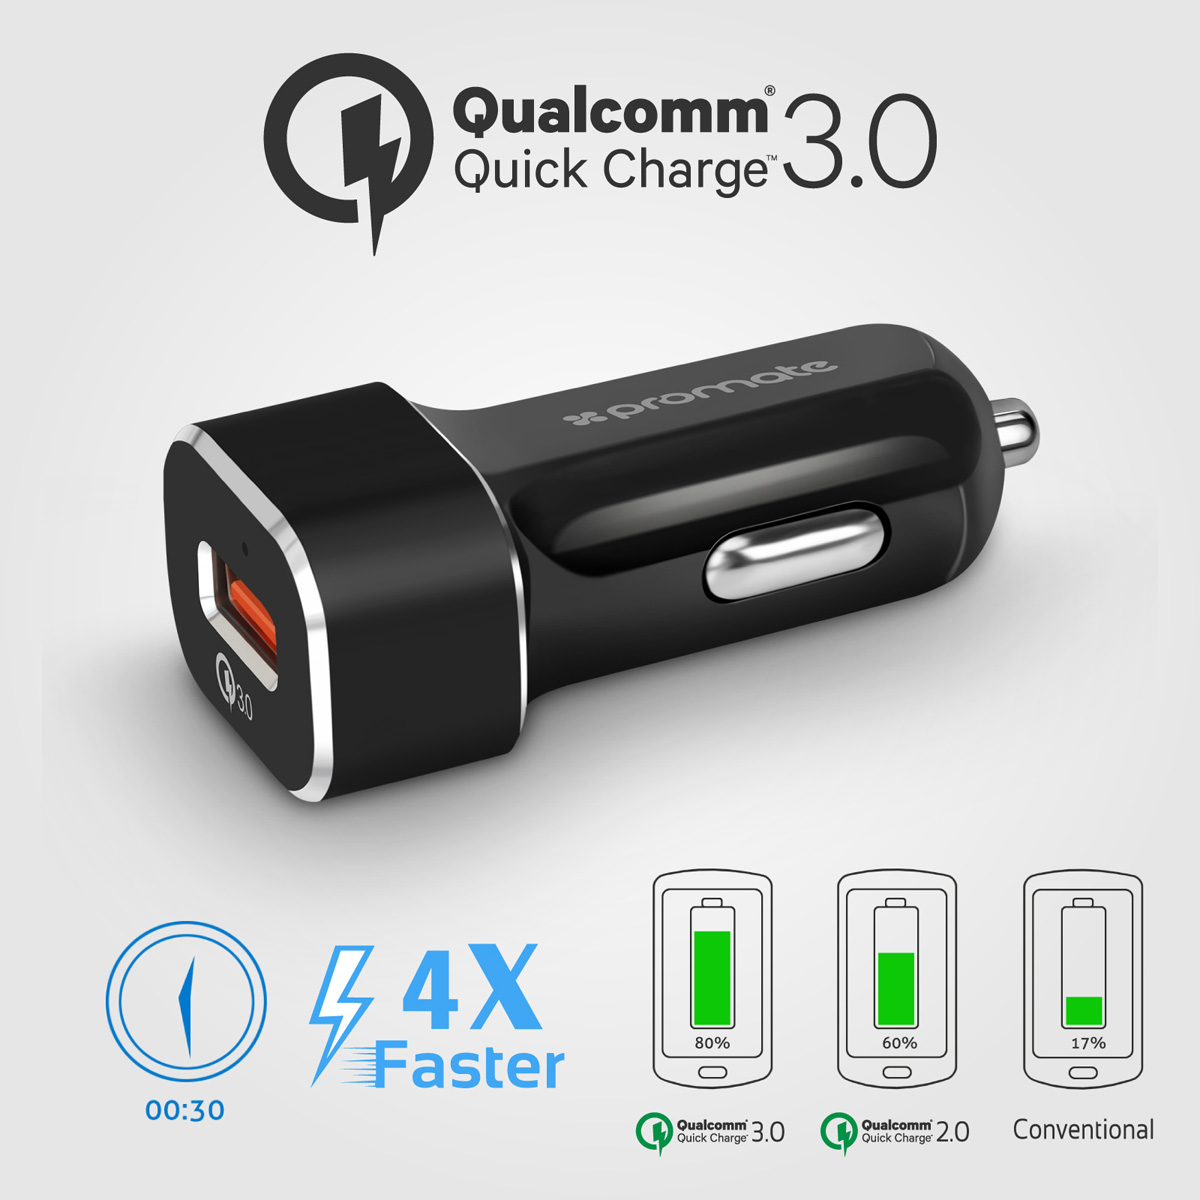 qualcomm quick charge 3.0 samsung s9